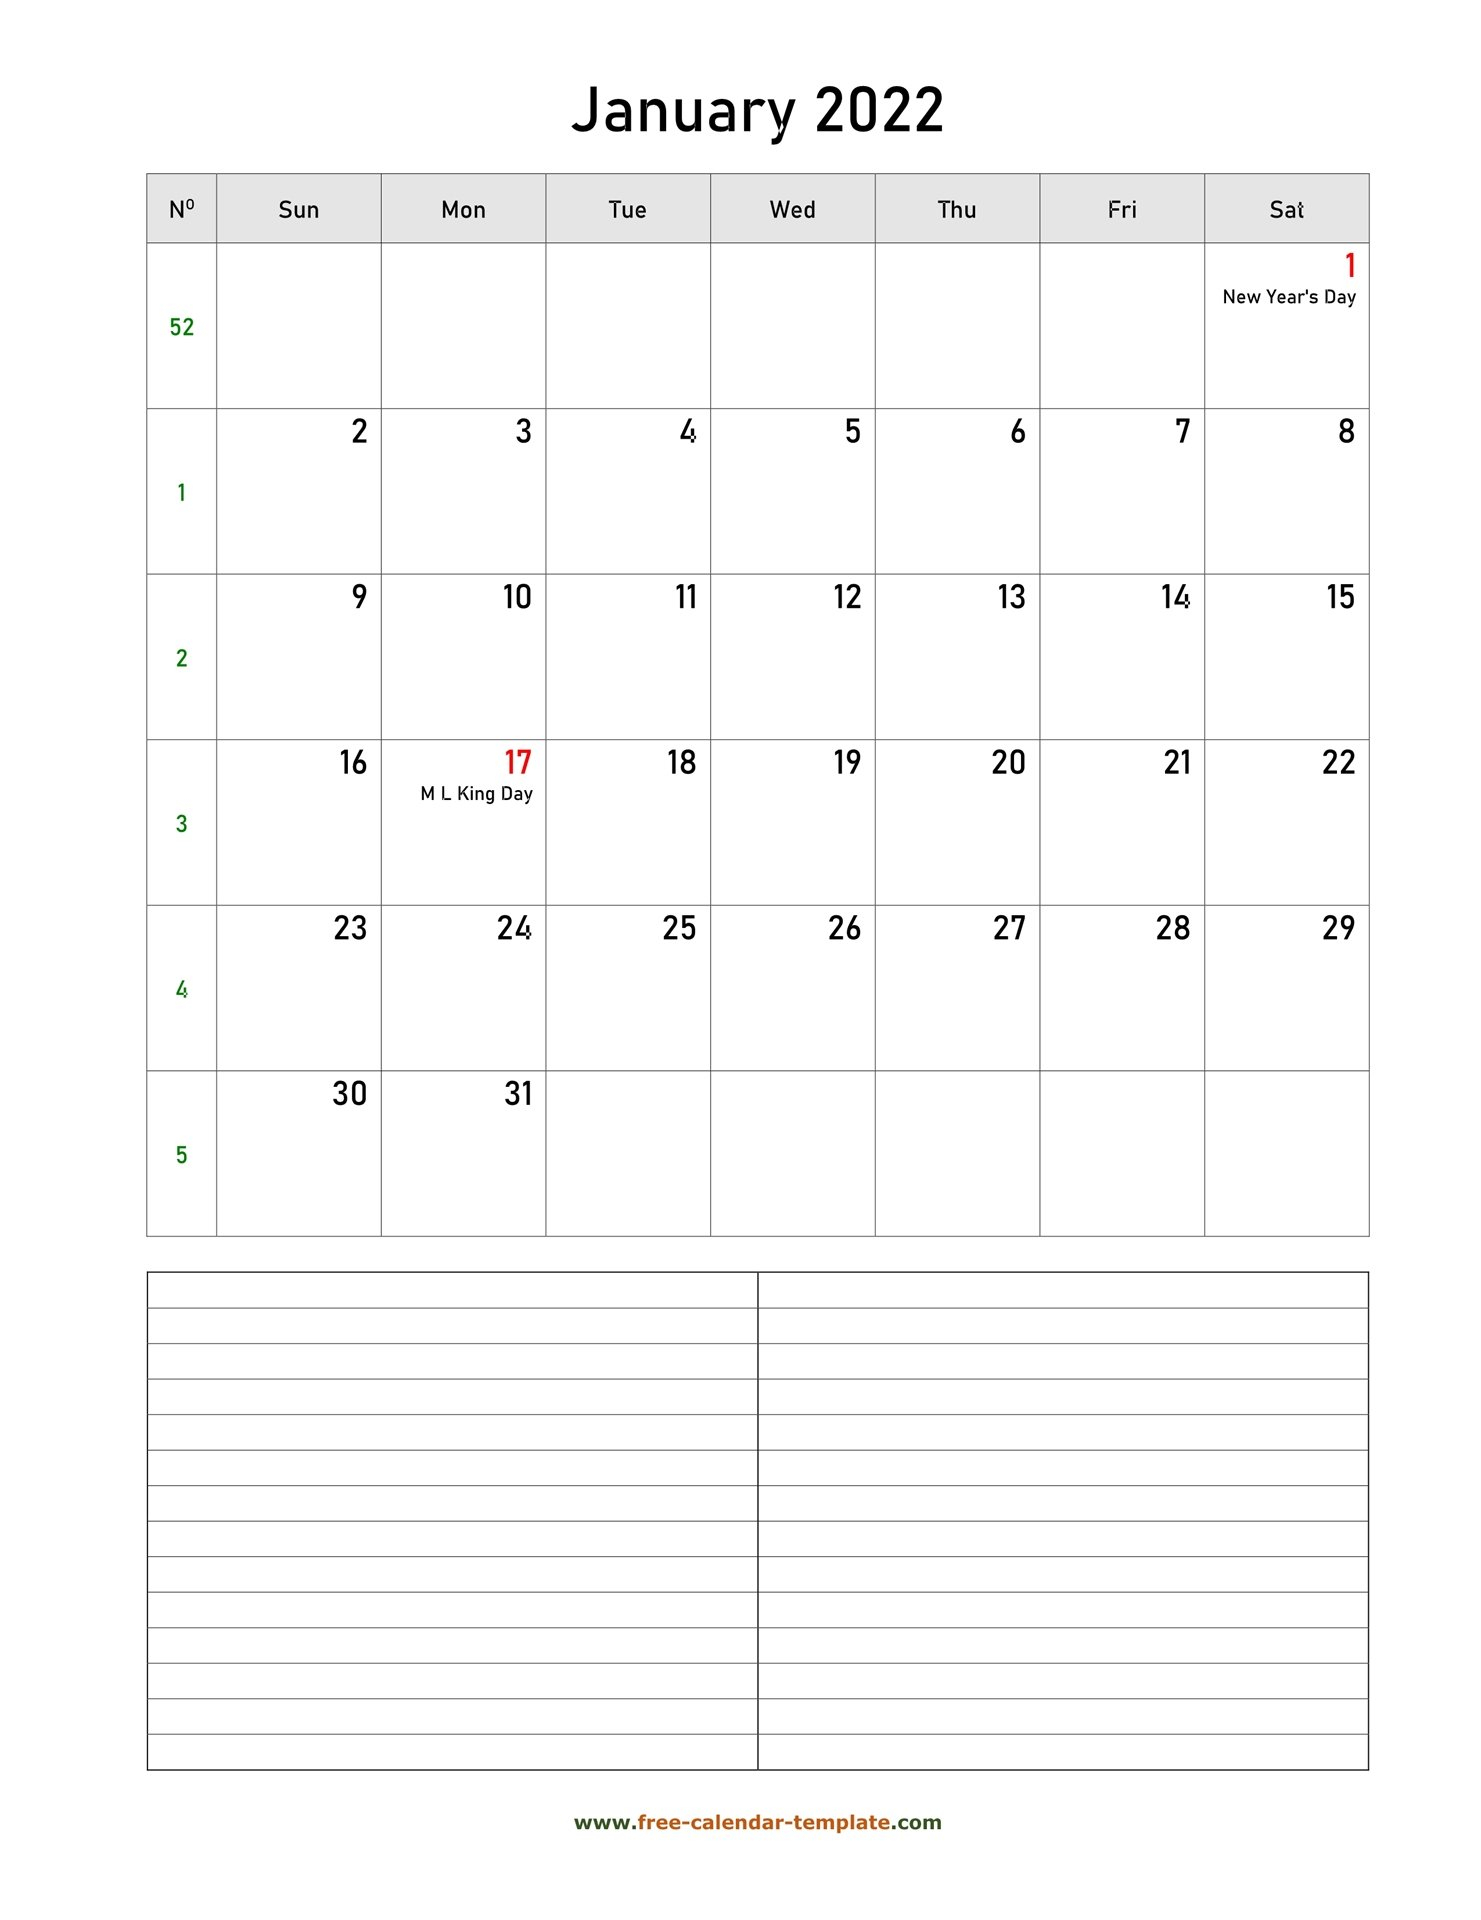 Printable January 2022 Calendar With Space For intended for 2022 2022 Monthly Planner Free Printable